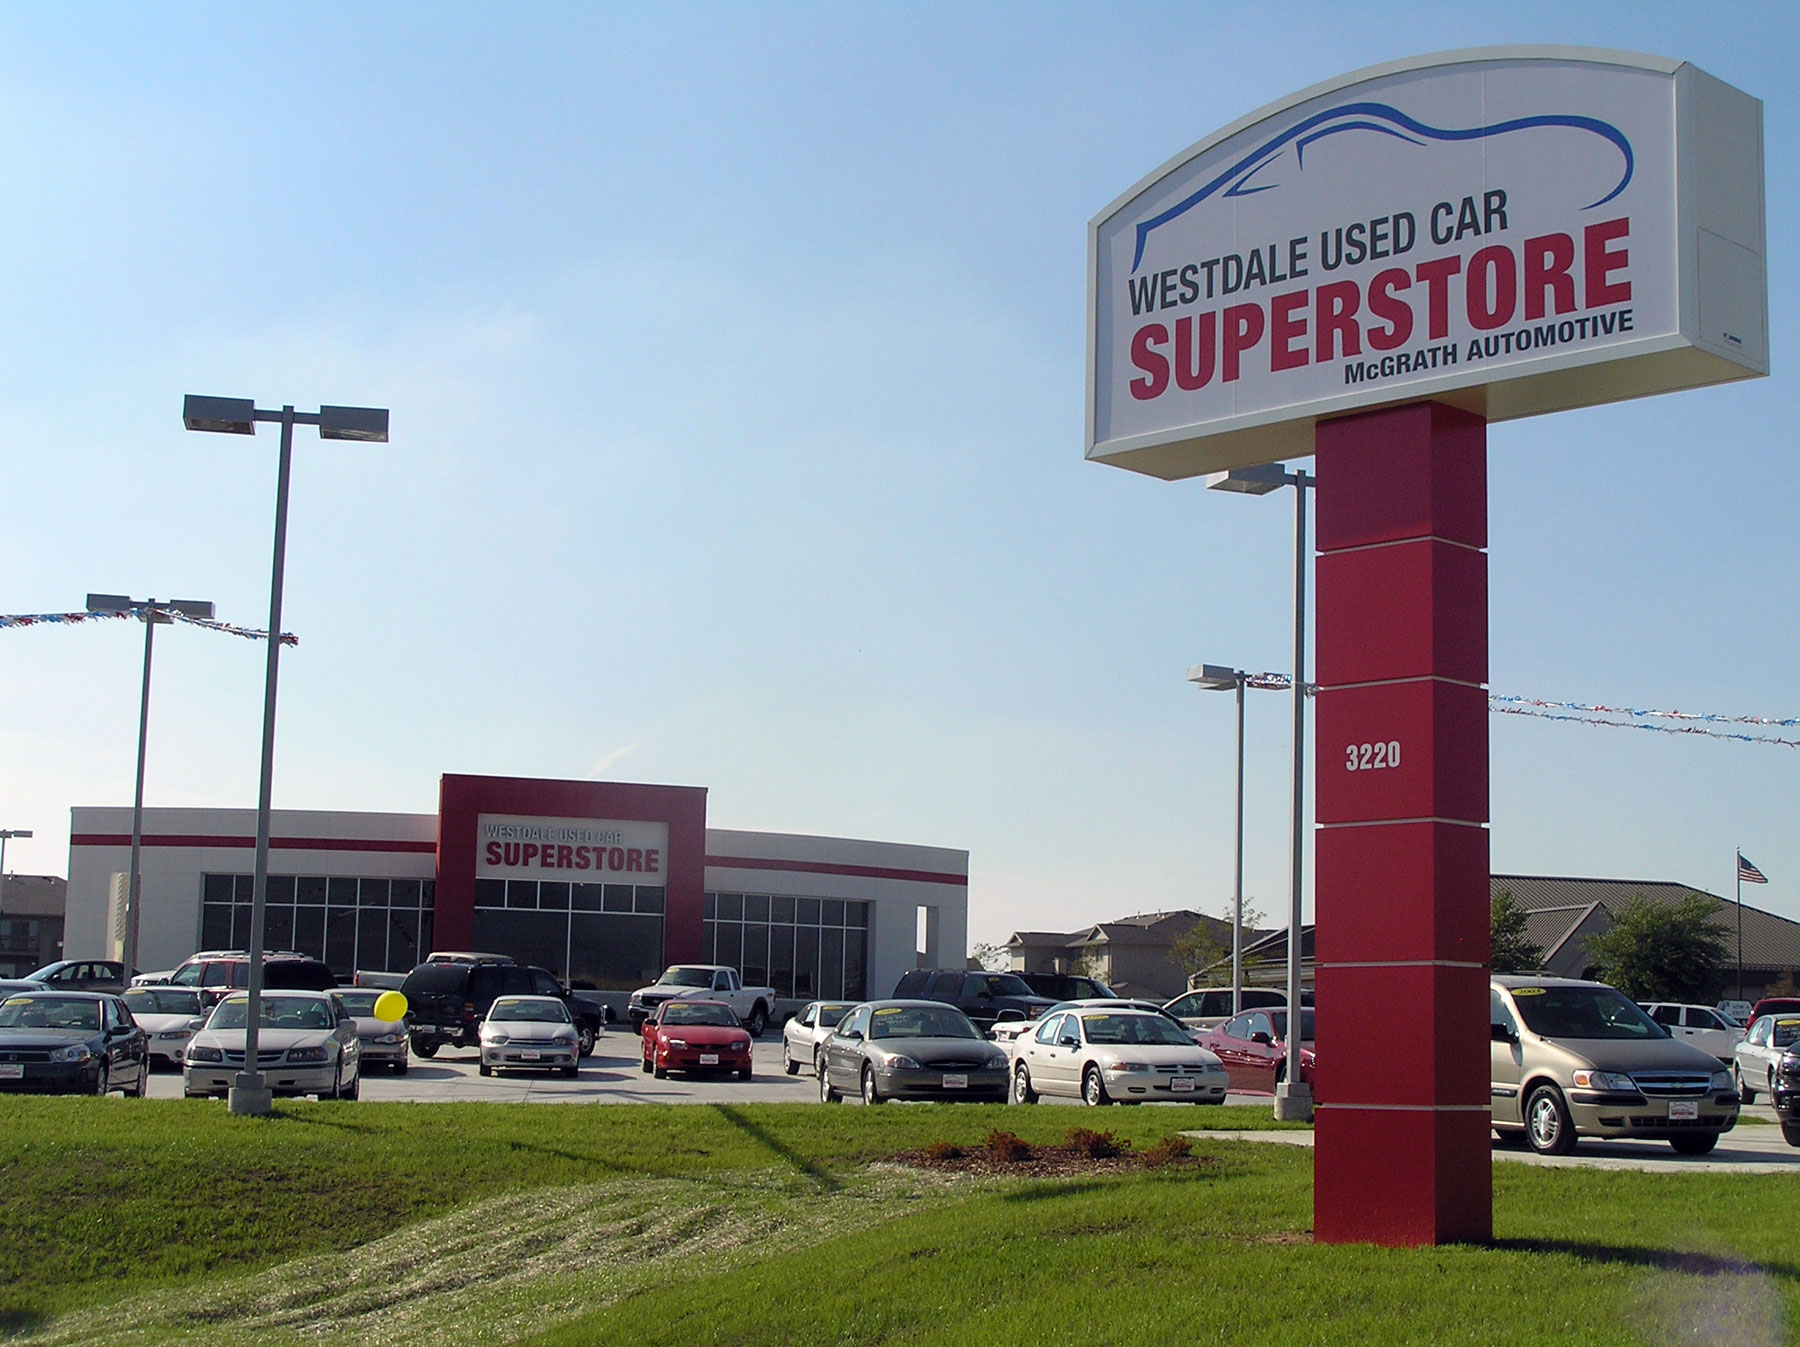 used car superstore